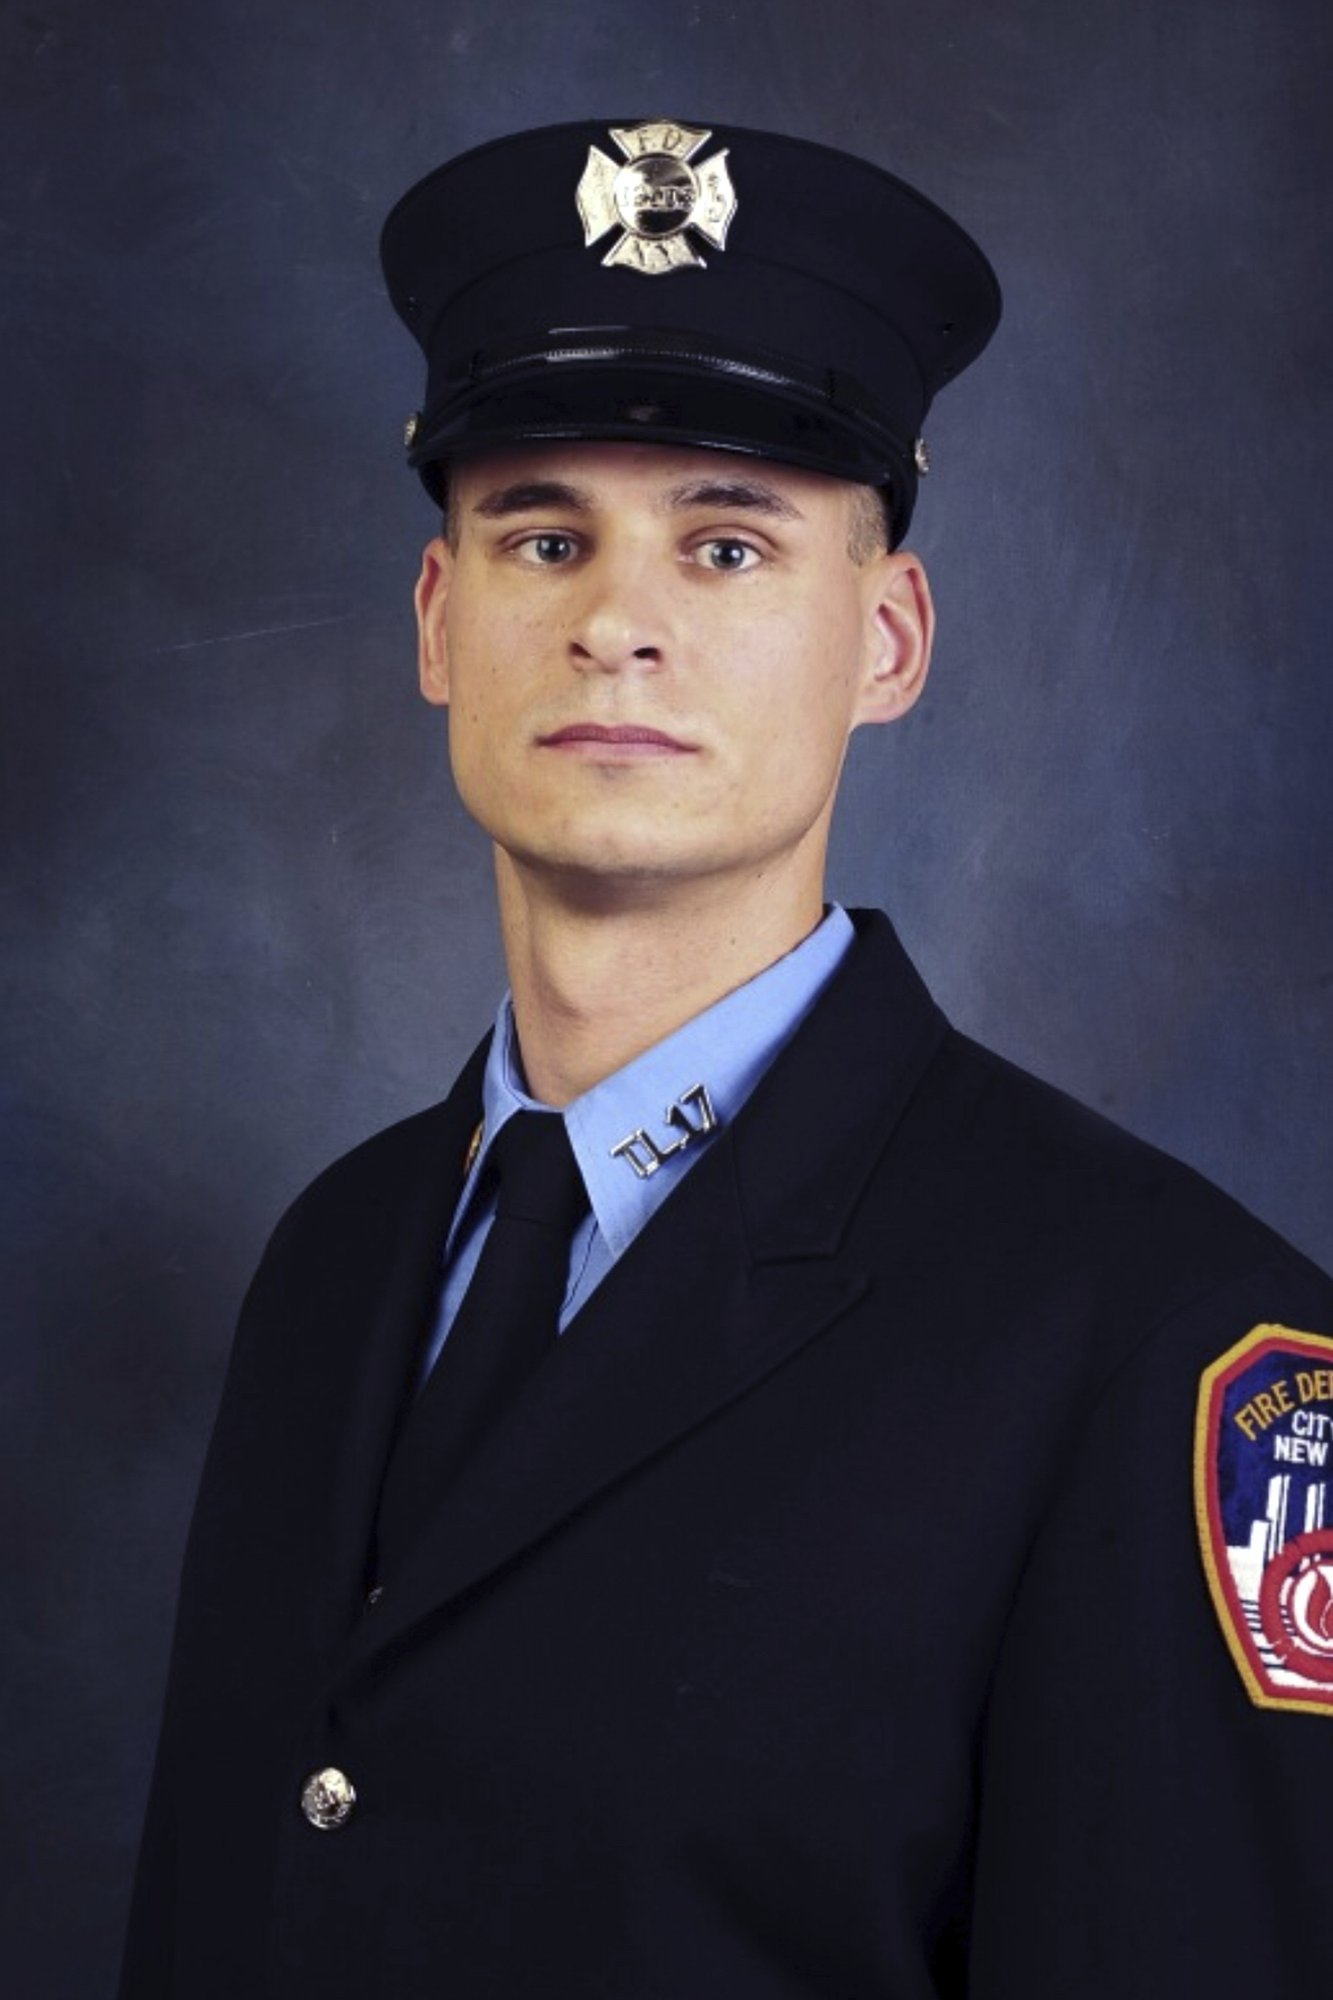 undated, file photo provided on April 9, 2019, by the Fire Department of New York shows firefighter Christopher Slutman_1556280150723.jpeg.jpg